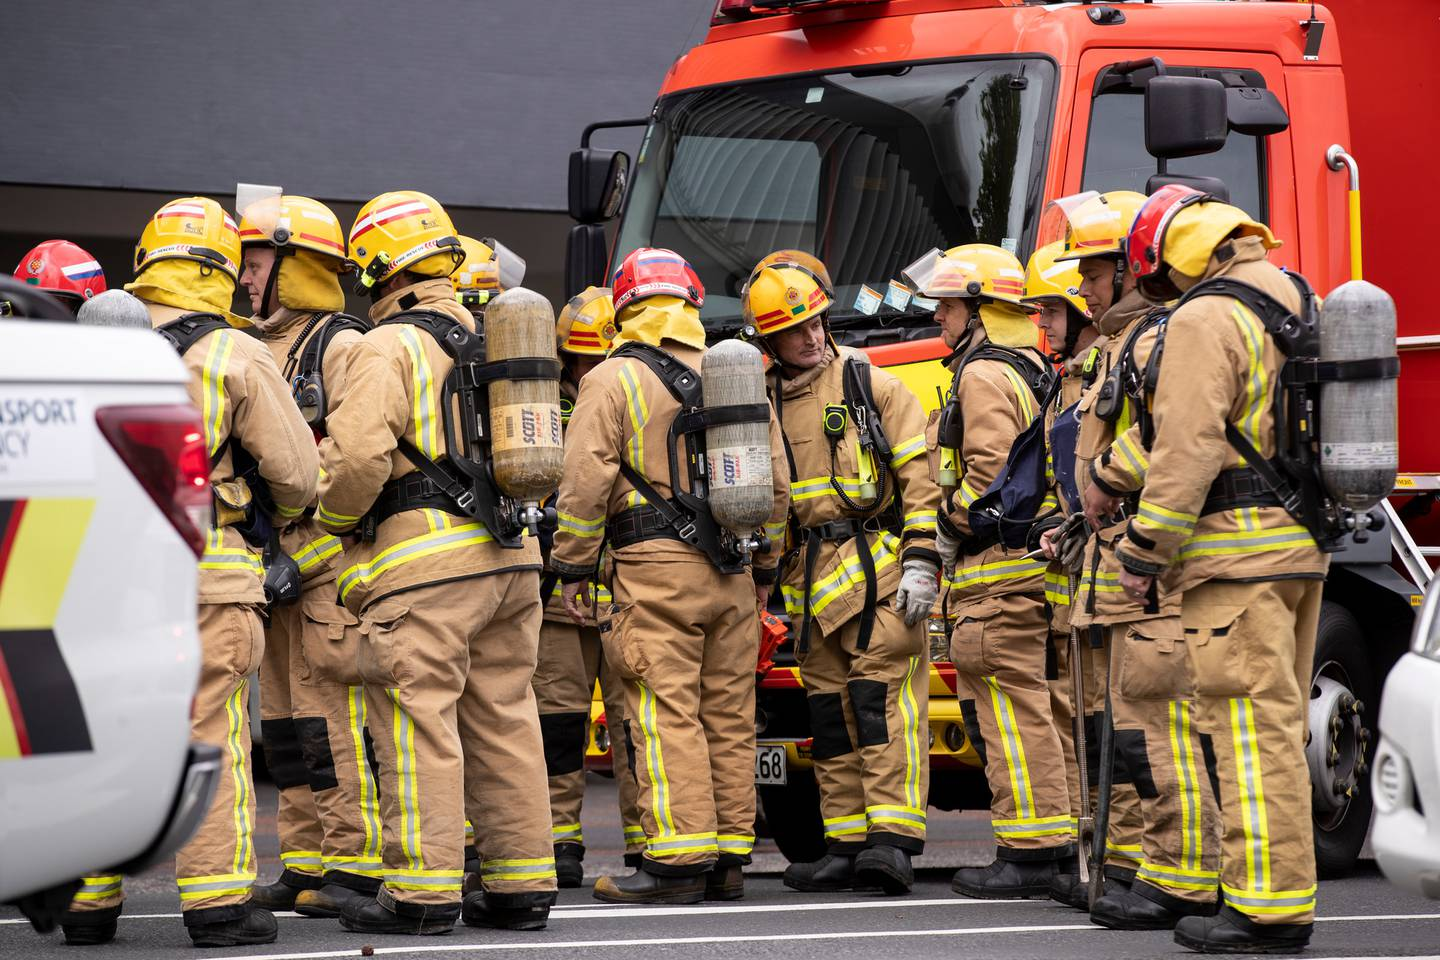 Firefighters say some had faulty equipment including not enough breathing apparatus and broken...